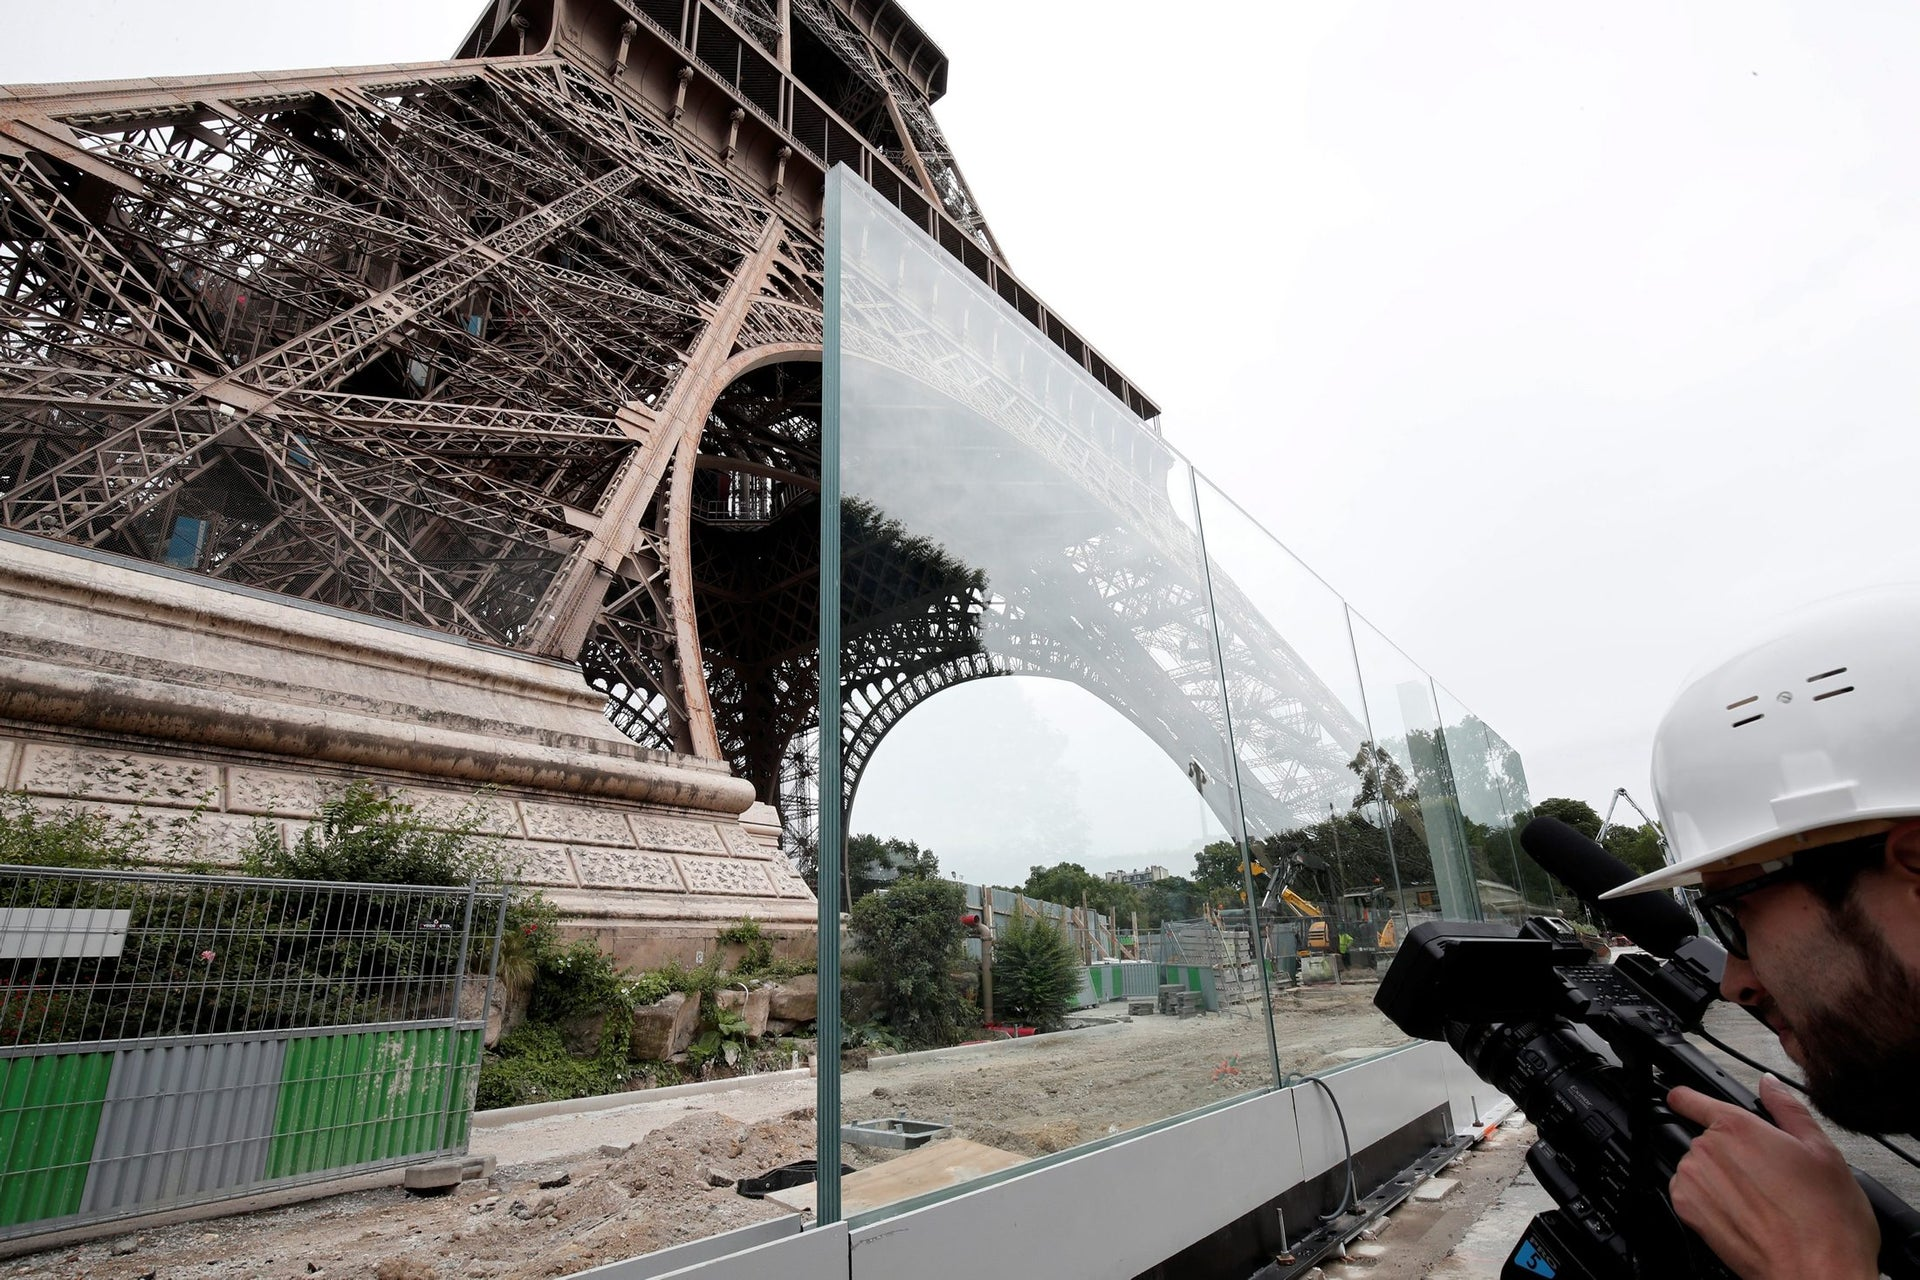 A member of the media makes images of the new glass security fence which is under construction around the Eiffel Tower in Paris, France, June 14, 2018.